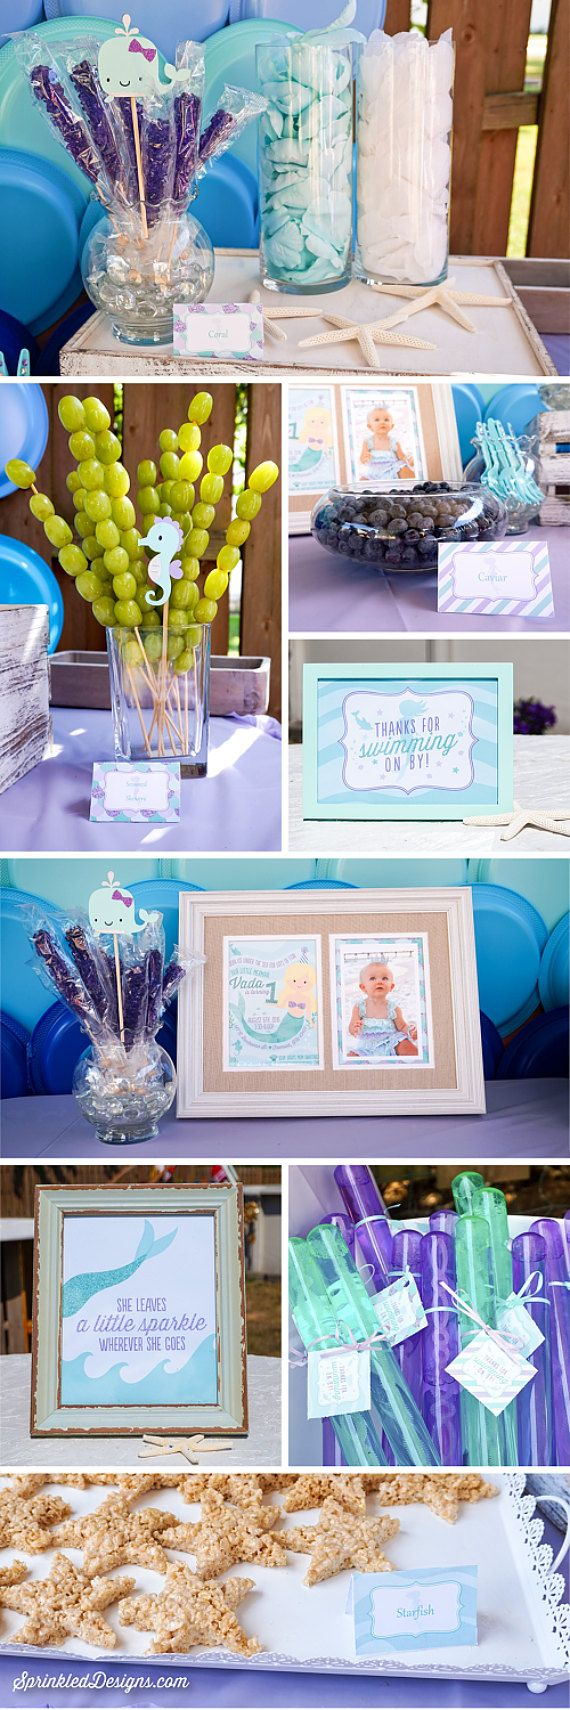 Mermaid Party Decorations - Printable Water Bottle Labels - Drink Wraps - Mermaid Decor, Mermaid Birthday Under the Sea Party Decorations by SprinkledDesigns.com